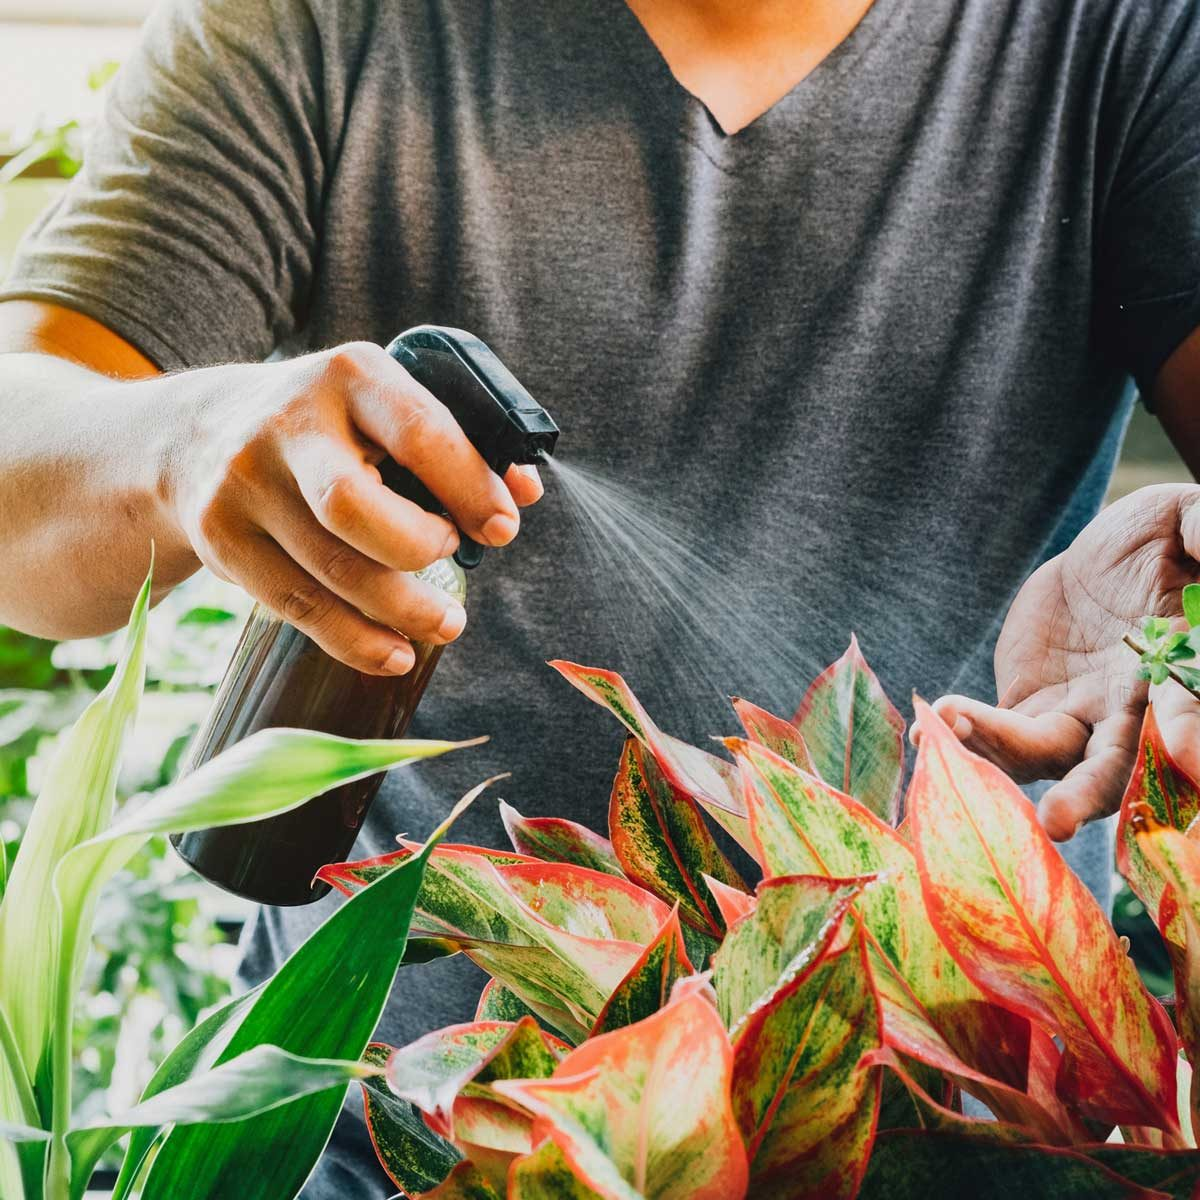 Man watering an aglaonema plant